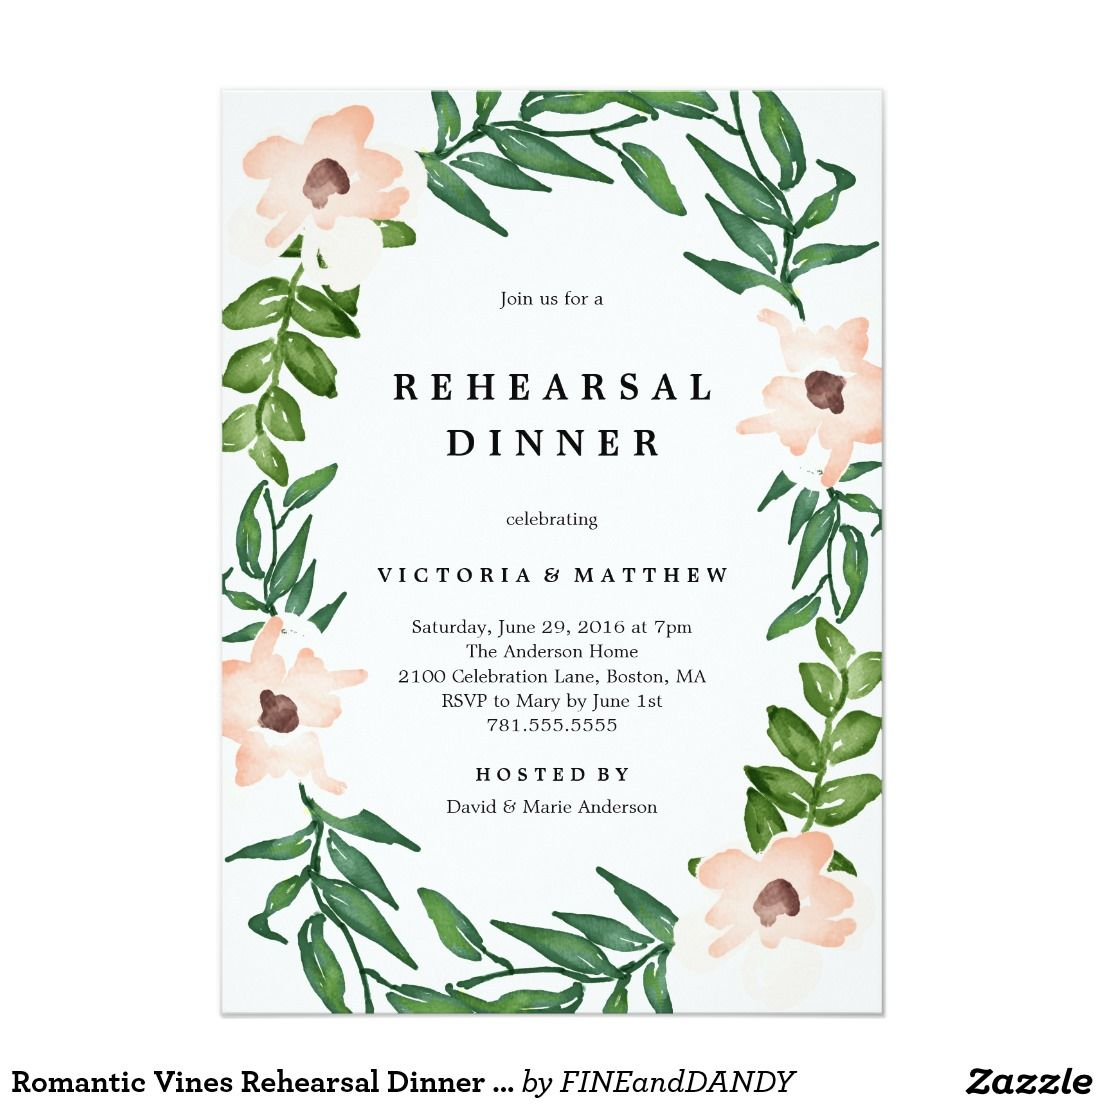 Romantic Wedding Invitation Wording: Romantic Vines Rehearsal Dinner Invitation